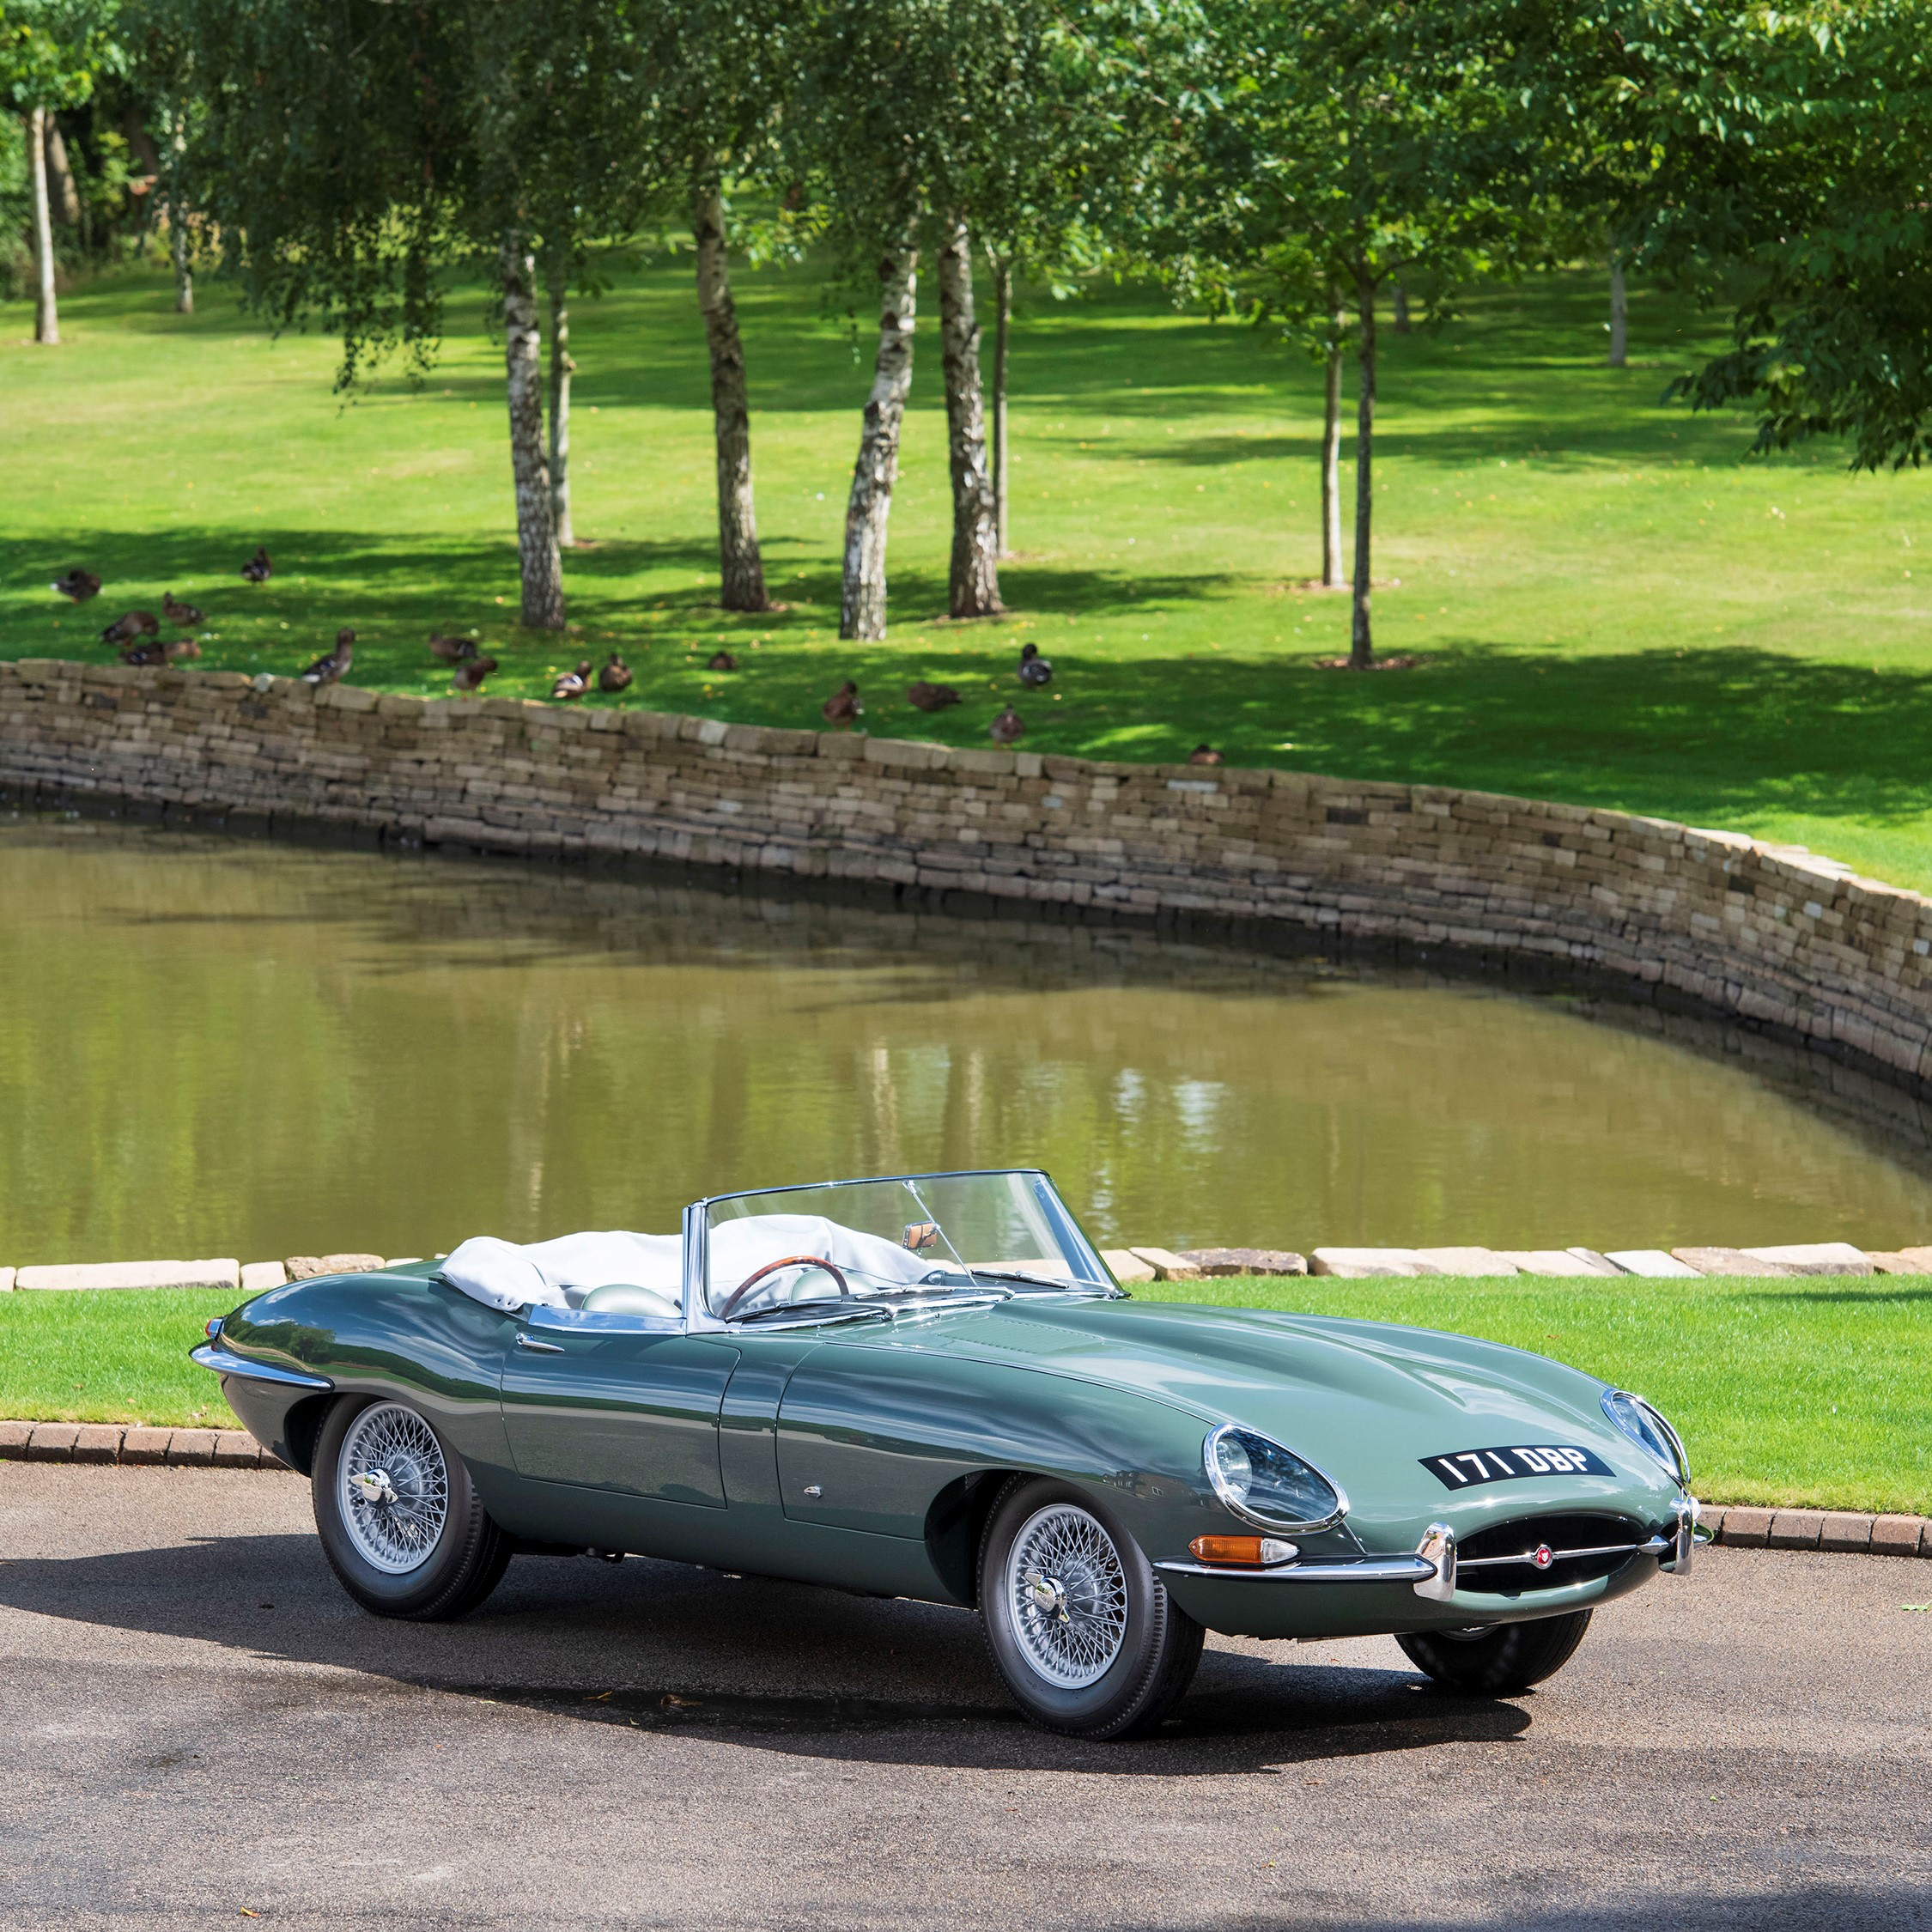 Jaguar E-Type via Concours of Elegance for use by 360 Magazine